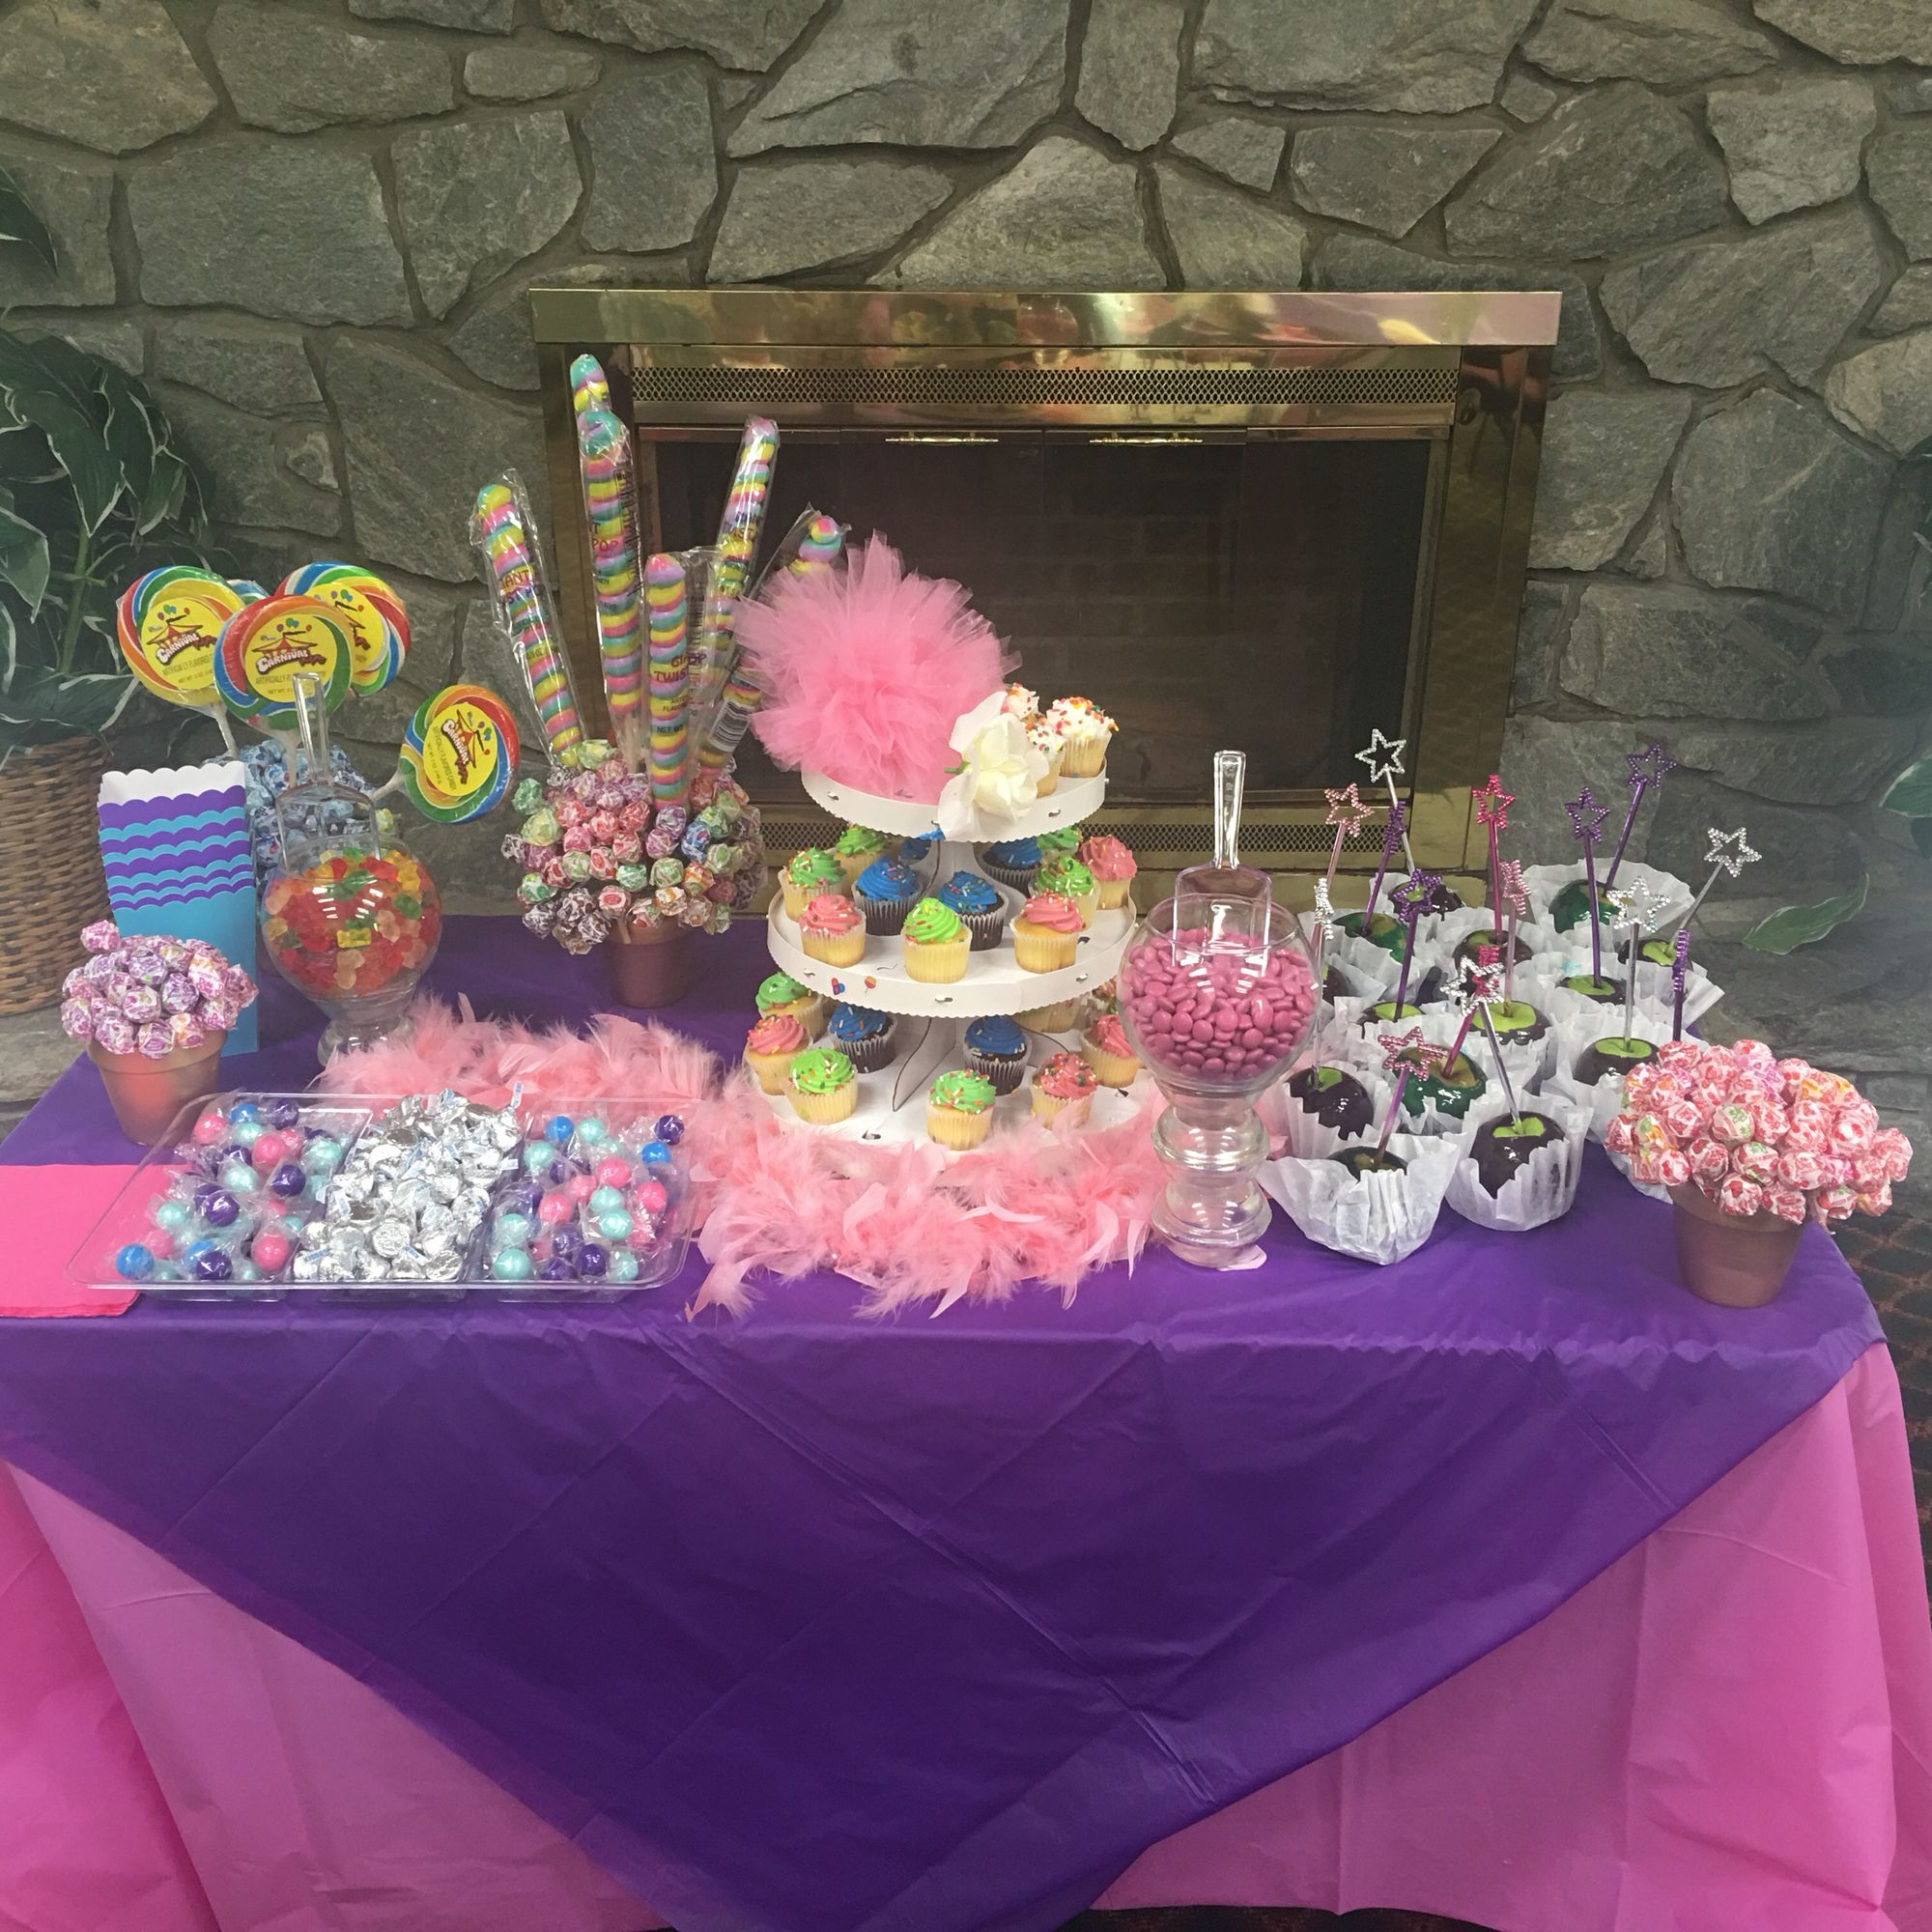 Party for my lil girl made lollipop topriary and vases with the party for my lil girl made lollipop topriary and vases with the candies and homemade candy reviewsmspy